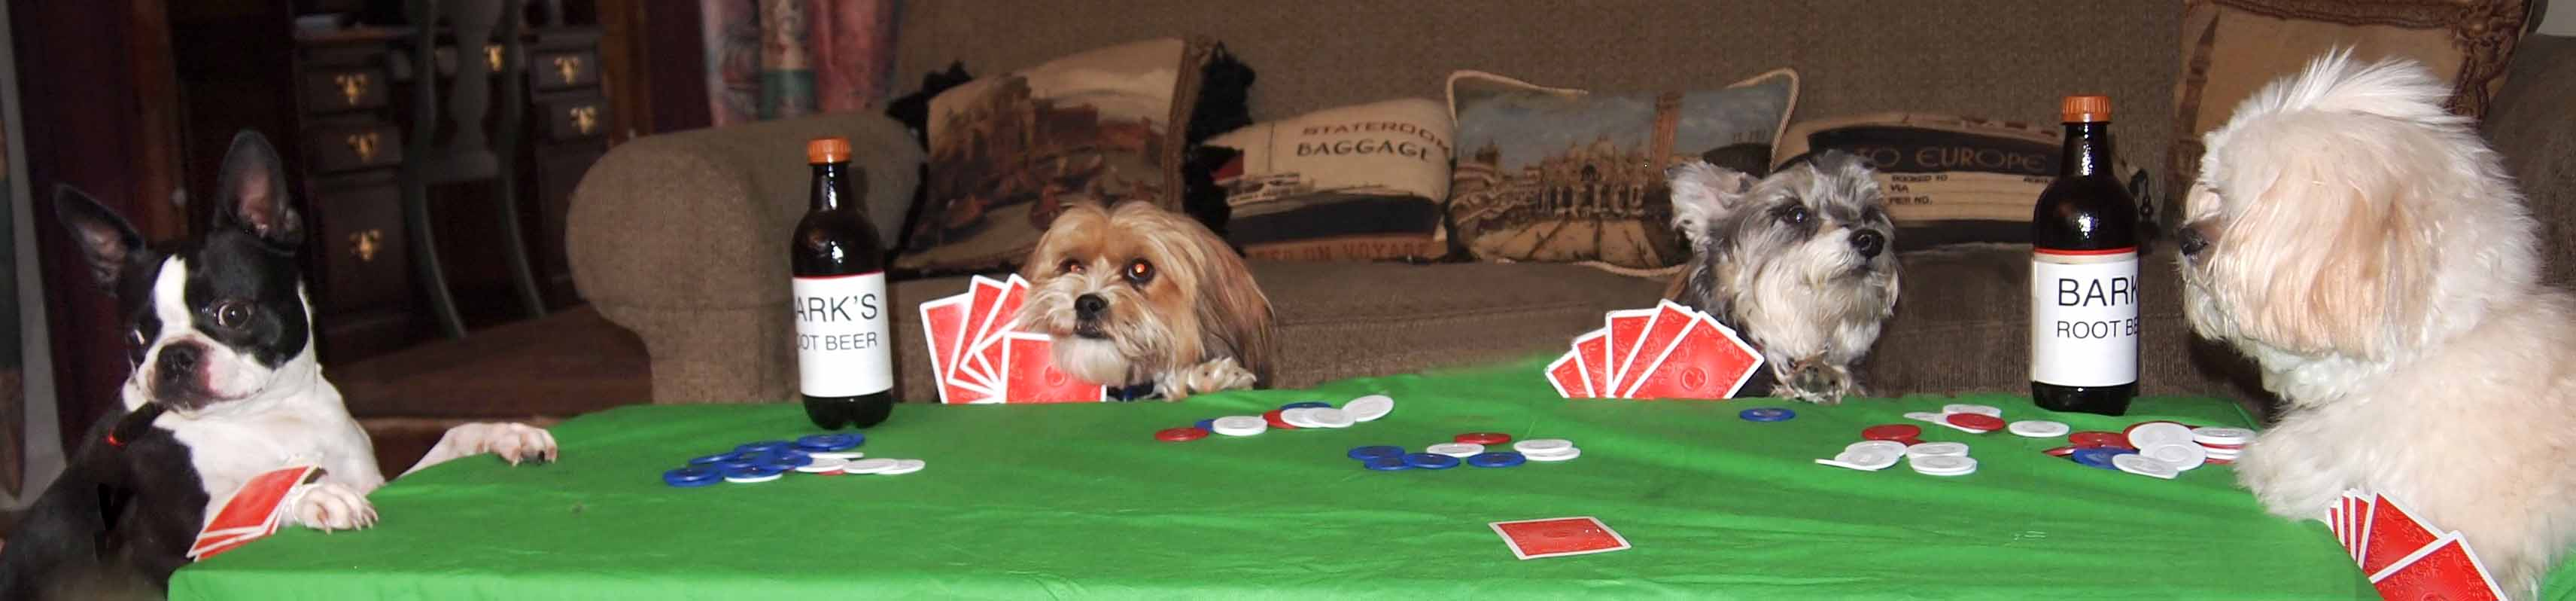 playing poker Practice your moves play high stakes poker against the computer to improve your skills in this free online poker game.